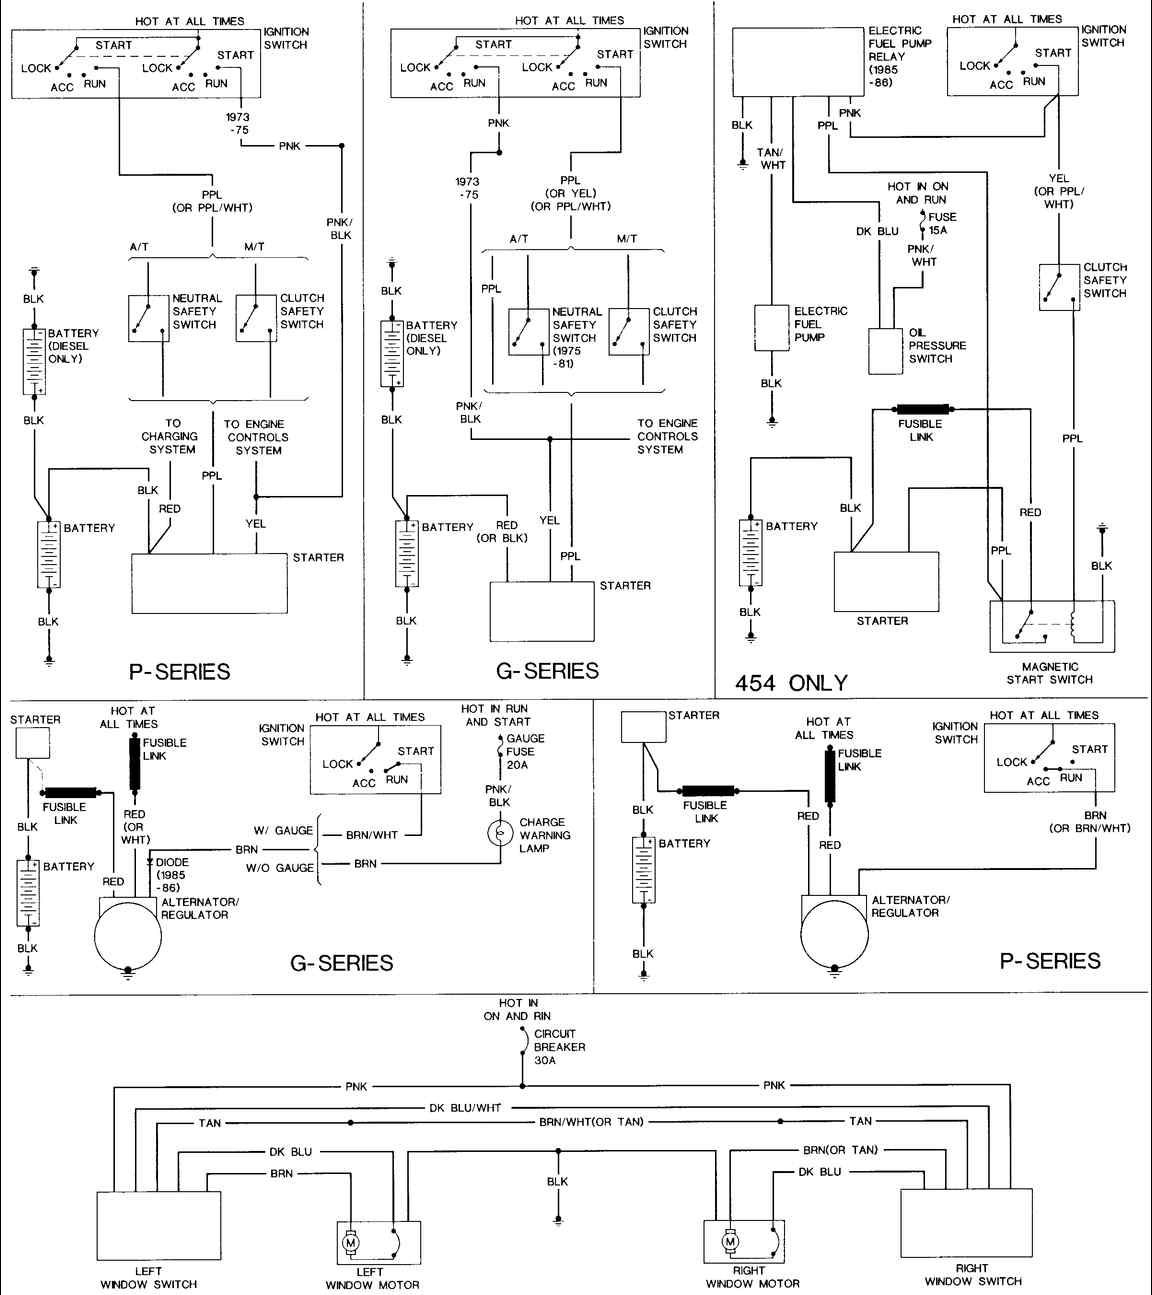 0c73623a181dc376dbb4777e2029d285 85 chevy truck wiring diagram 85 chevy van the steering column Wiring Harness Diagram at gsmx.co